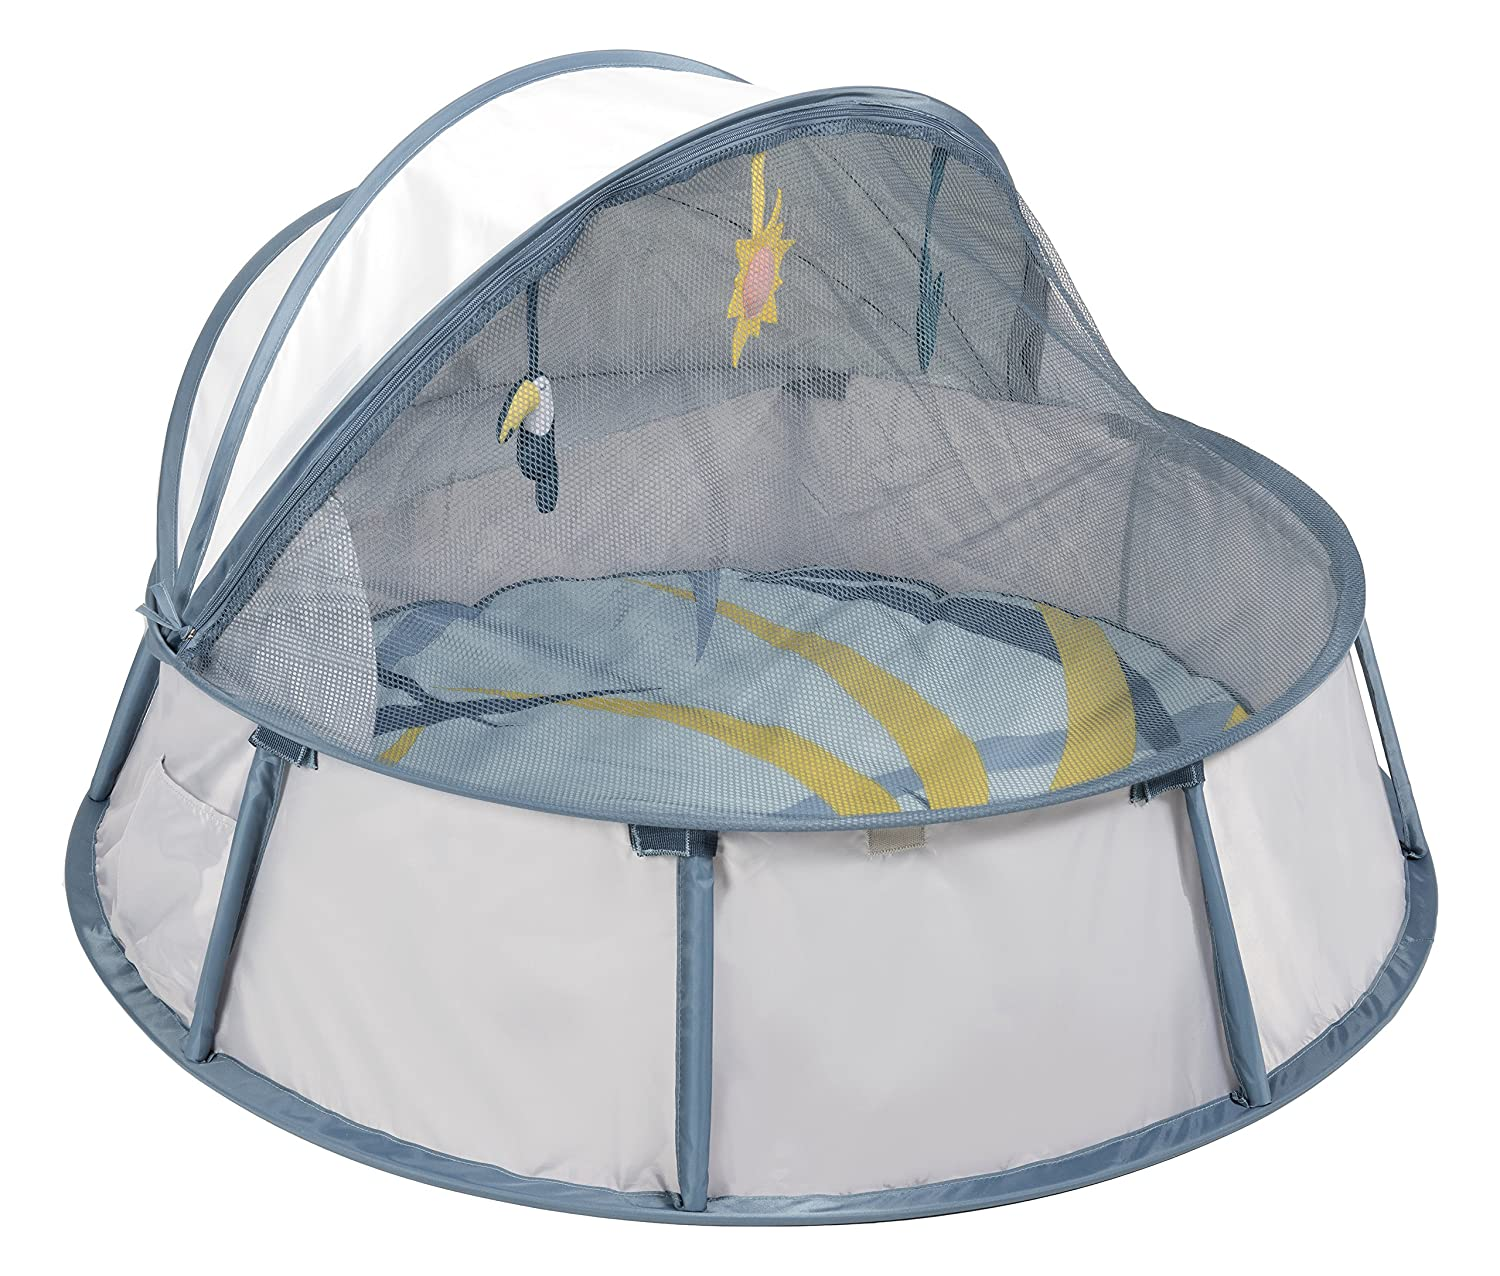 Babymoov Babyni UV Tent / Playpen, Blue/Taupe A035204